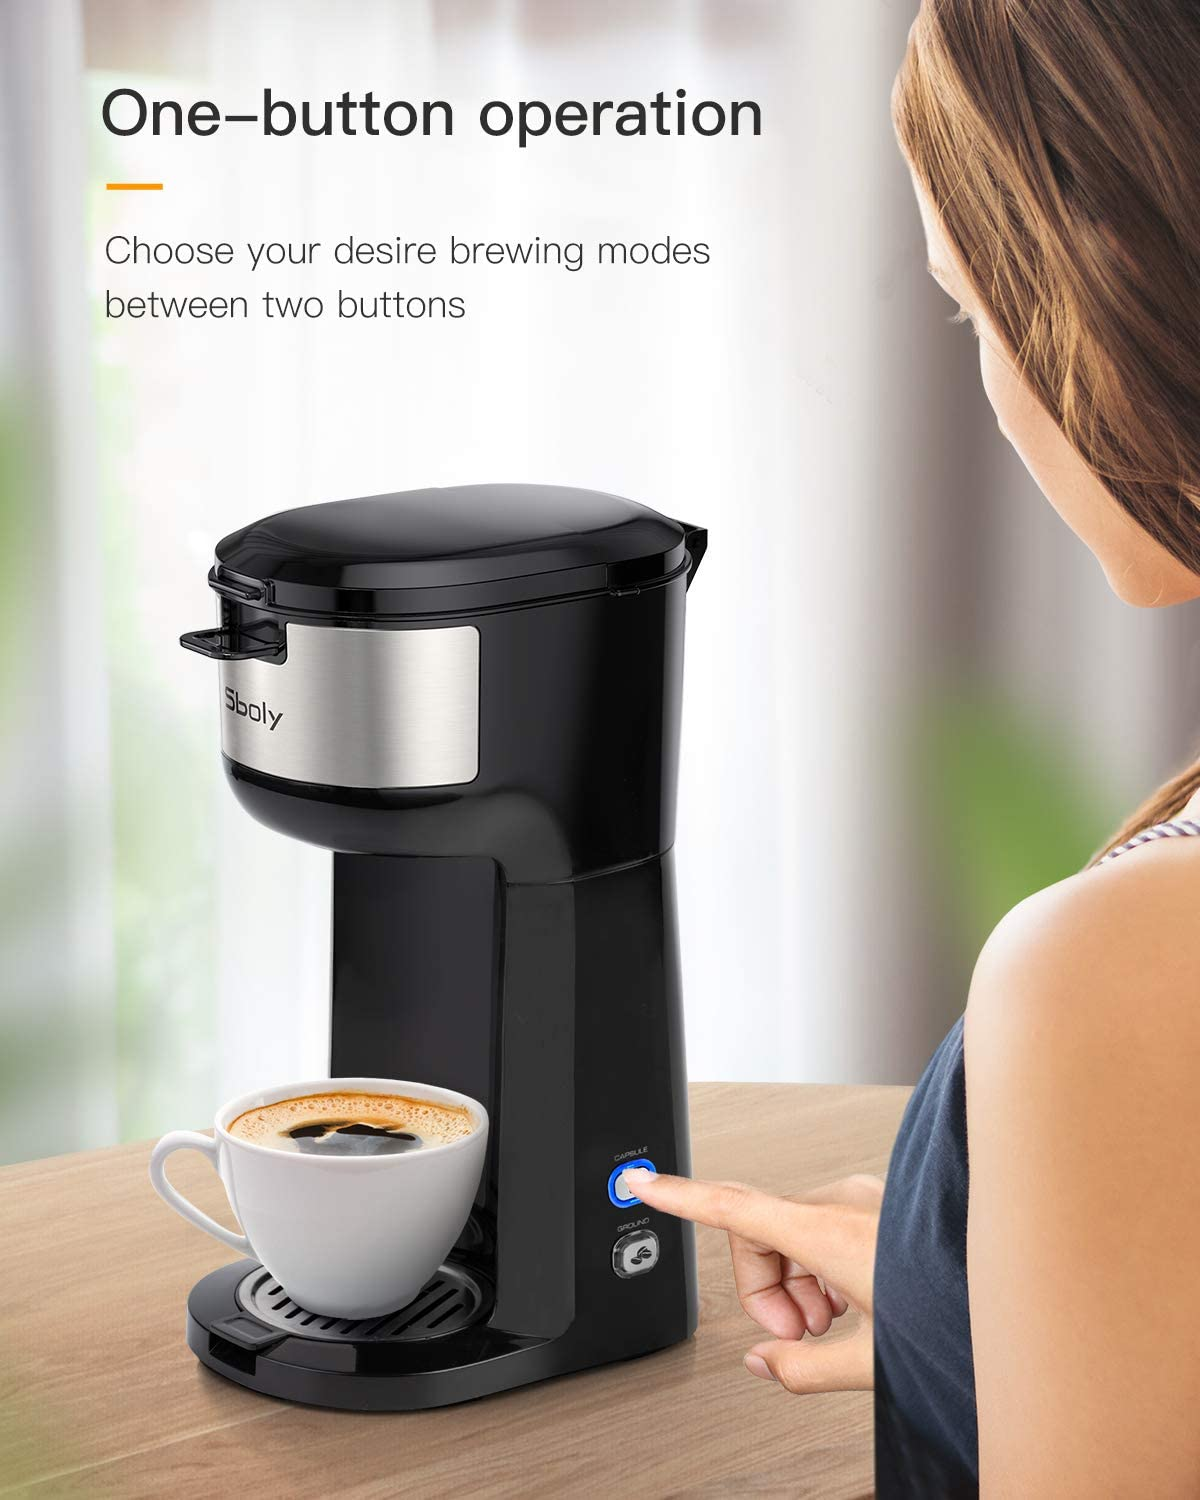 Sboly Single Serve Coffee Maker Brewer for K-Cup Pod & Ground Coffee Thermal Drip Instant Coffee Machine with Self Cleaning Function, Brew Strength Control